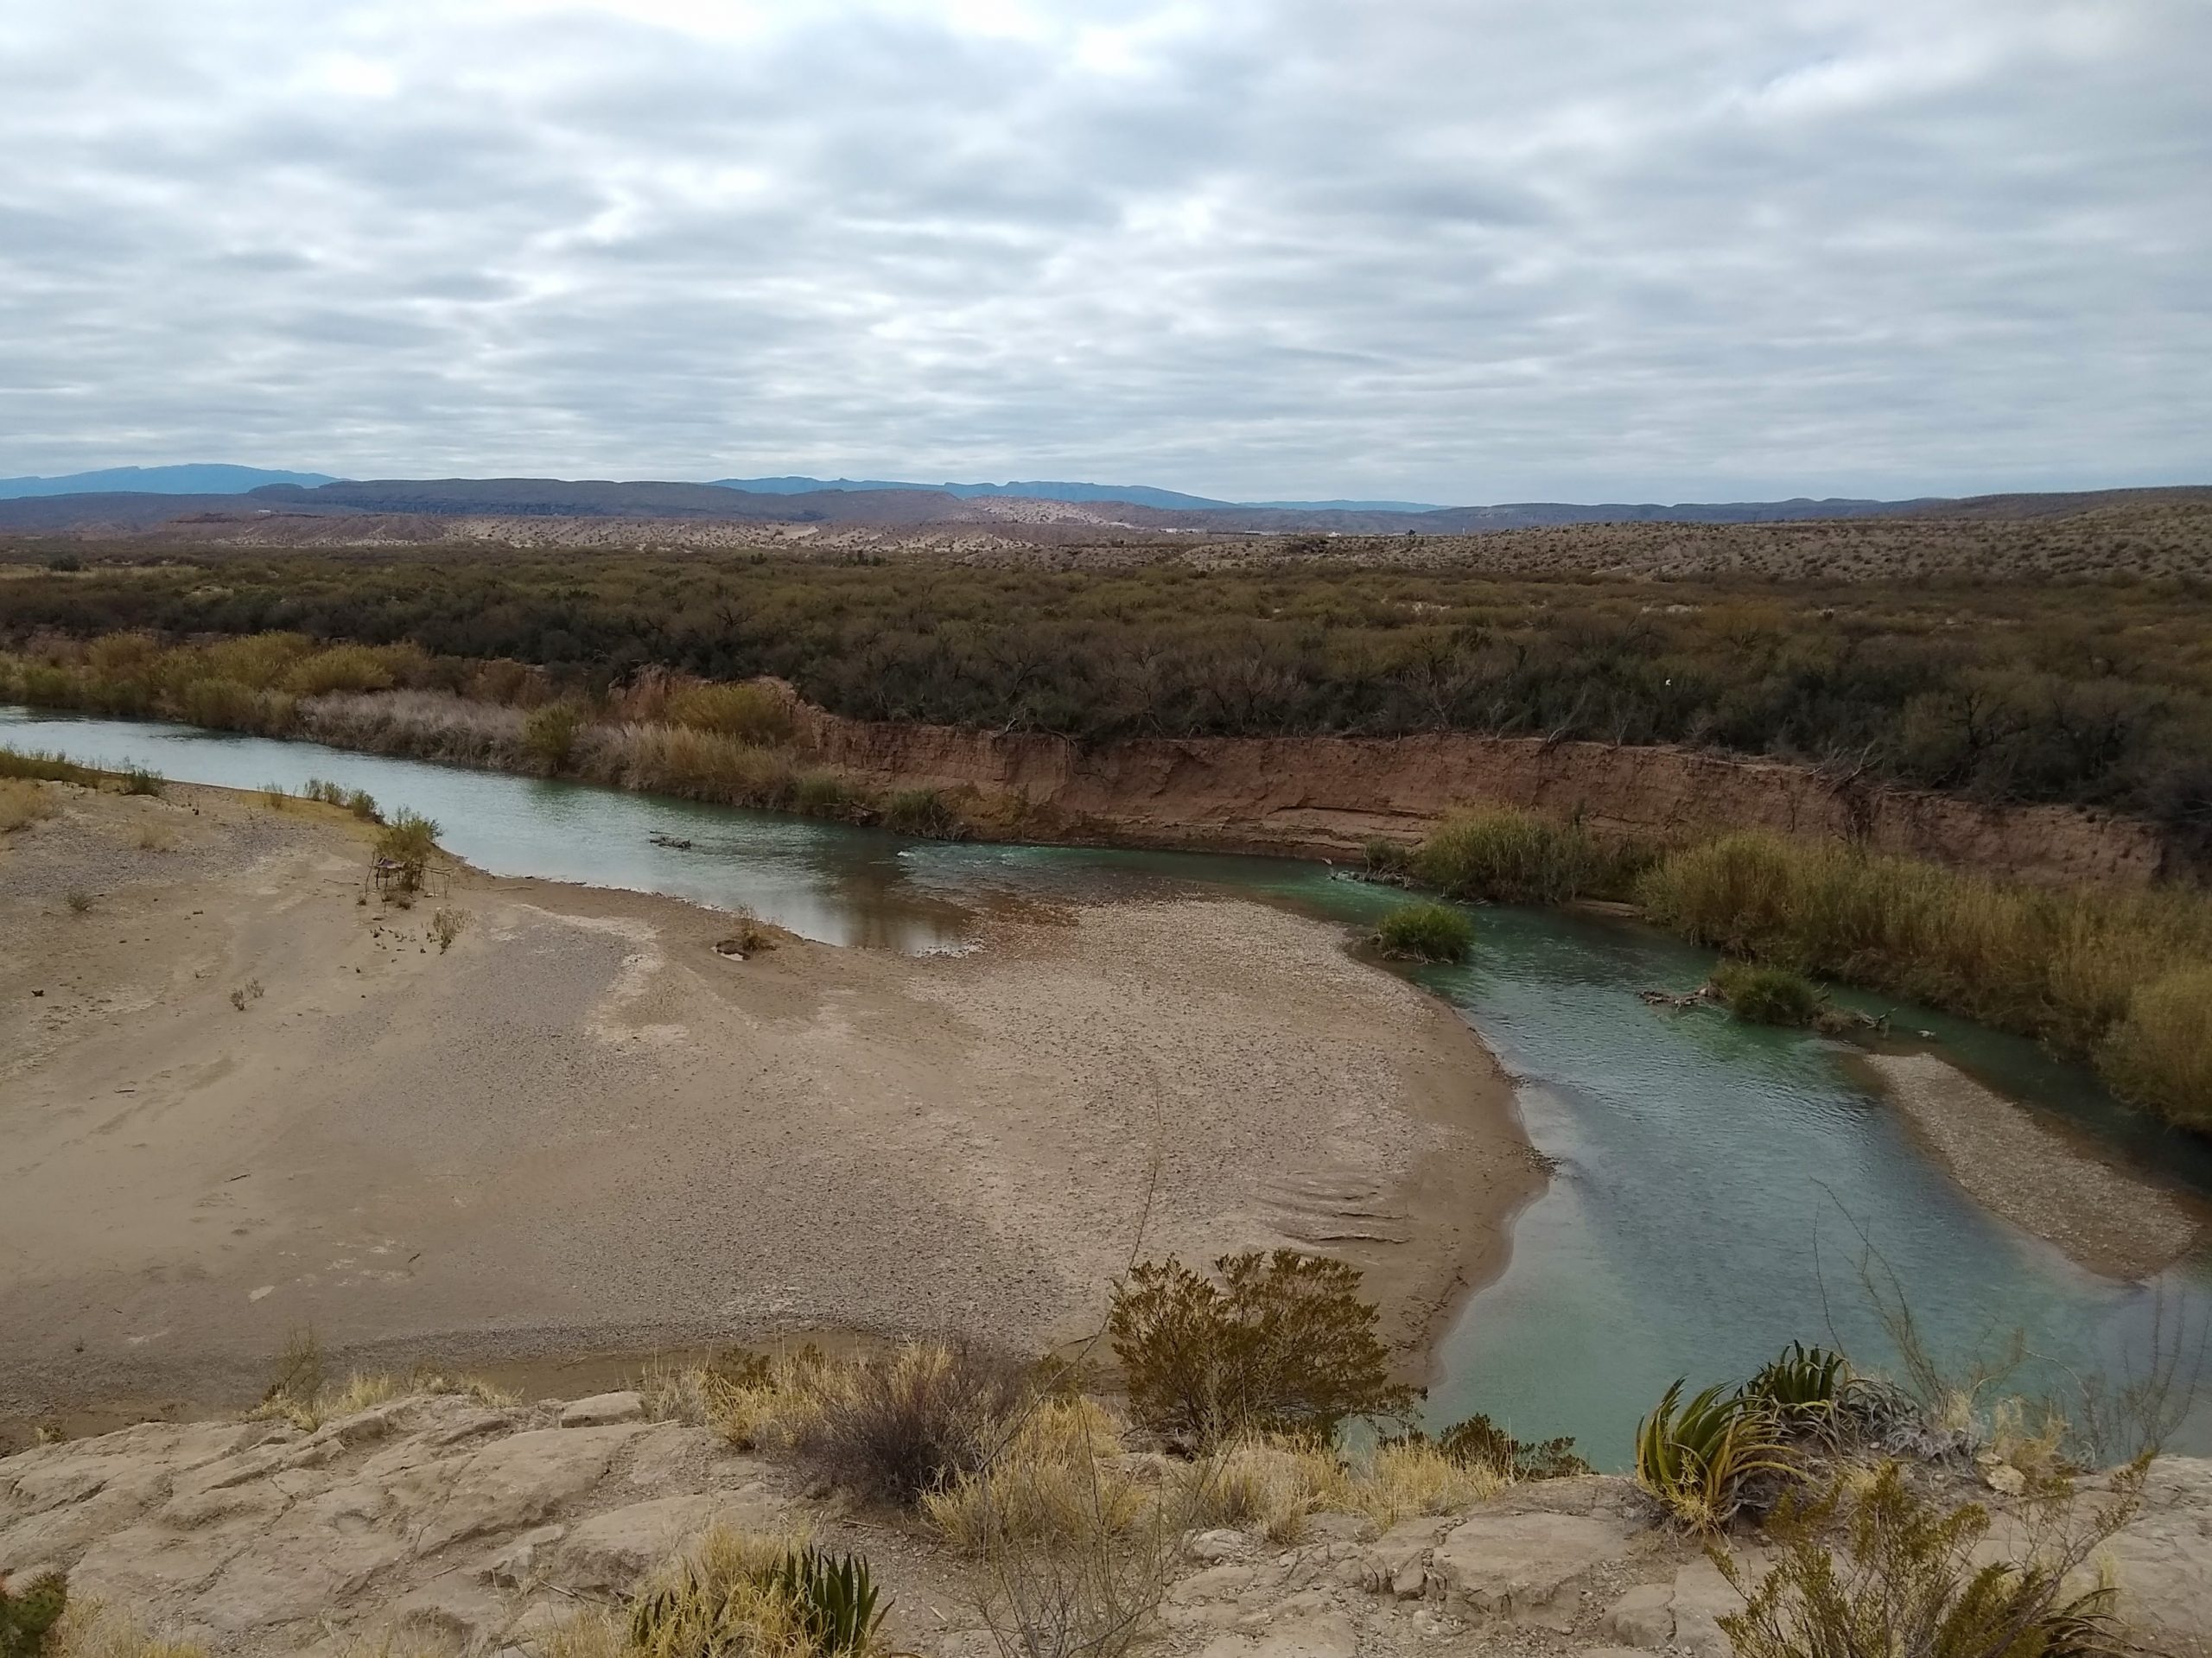 Overlooking the Rio Grande in Big Bend NP